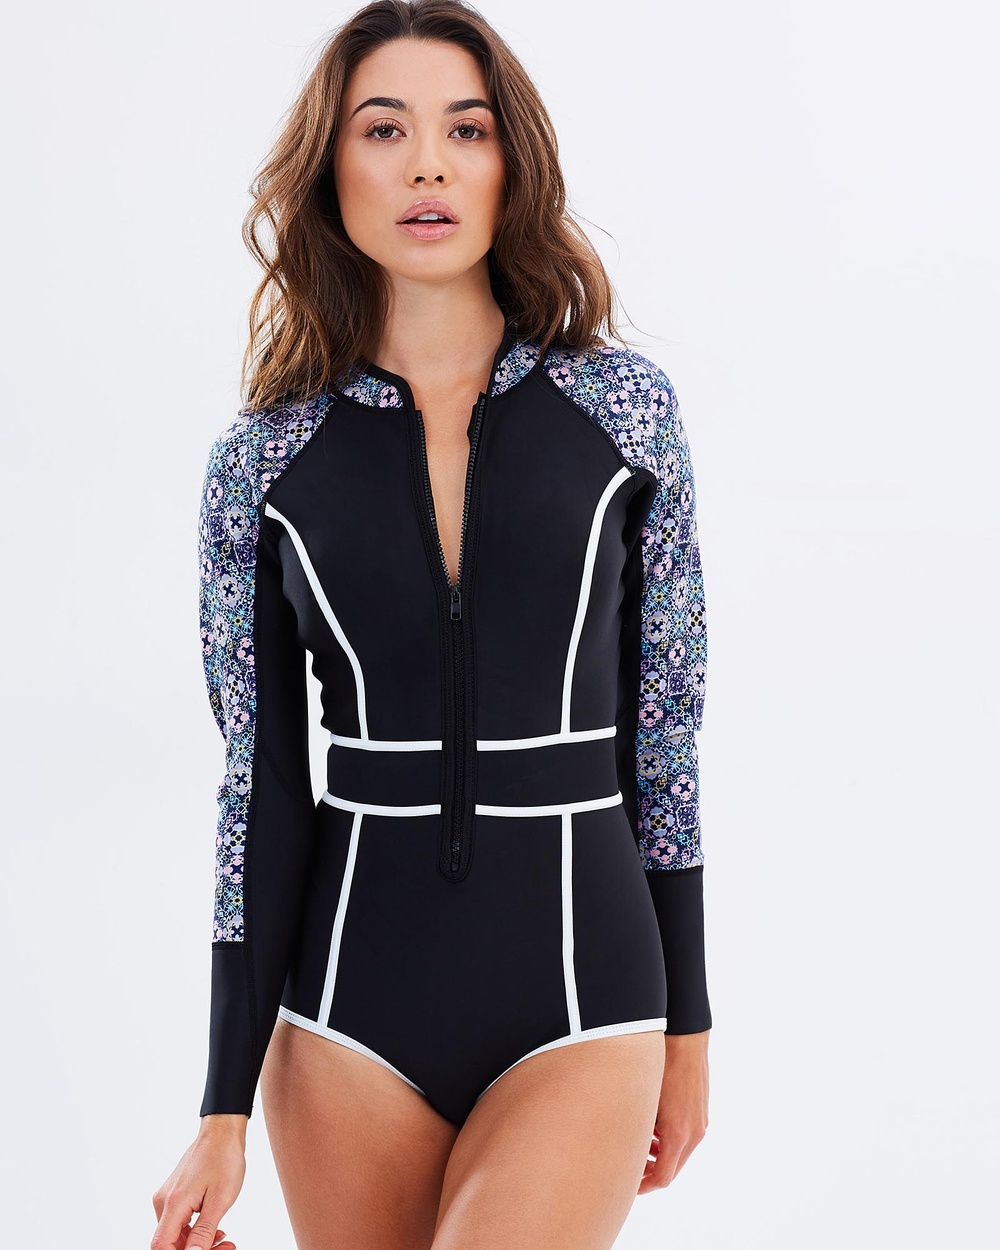 Duskii Waikiki Nights Long Sleeve Bikini Suit One-Piece / Swimsuit Tile Waikiki Nights Long Sleeve Bikini Suit